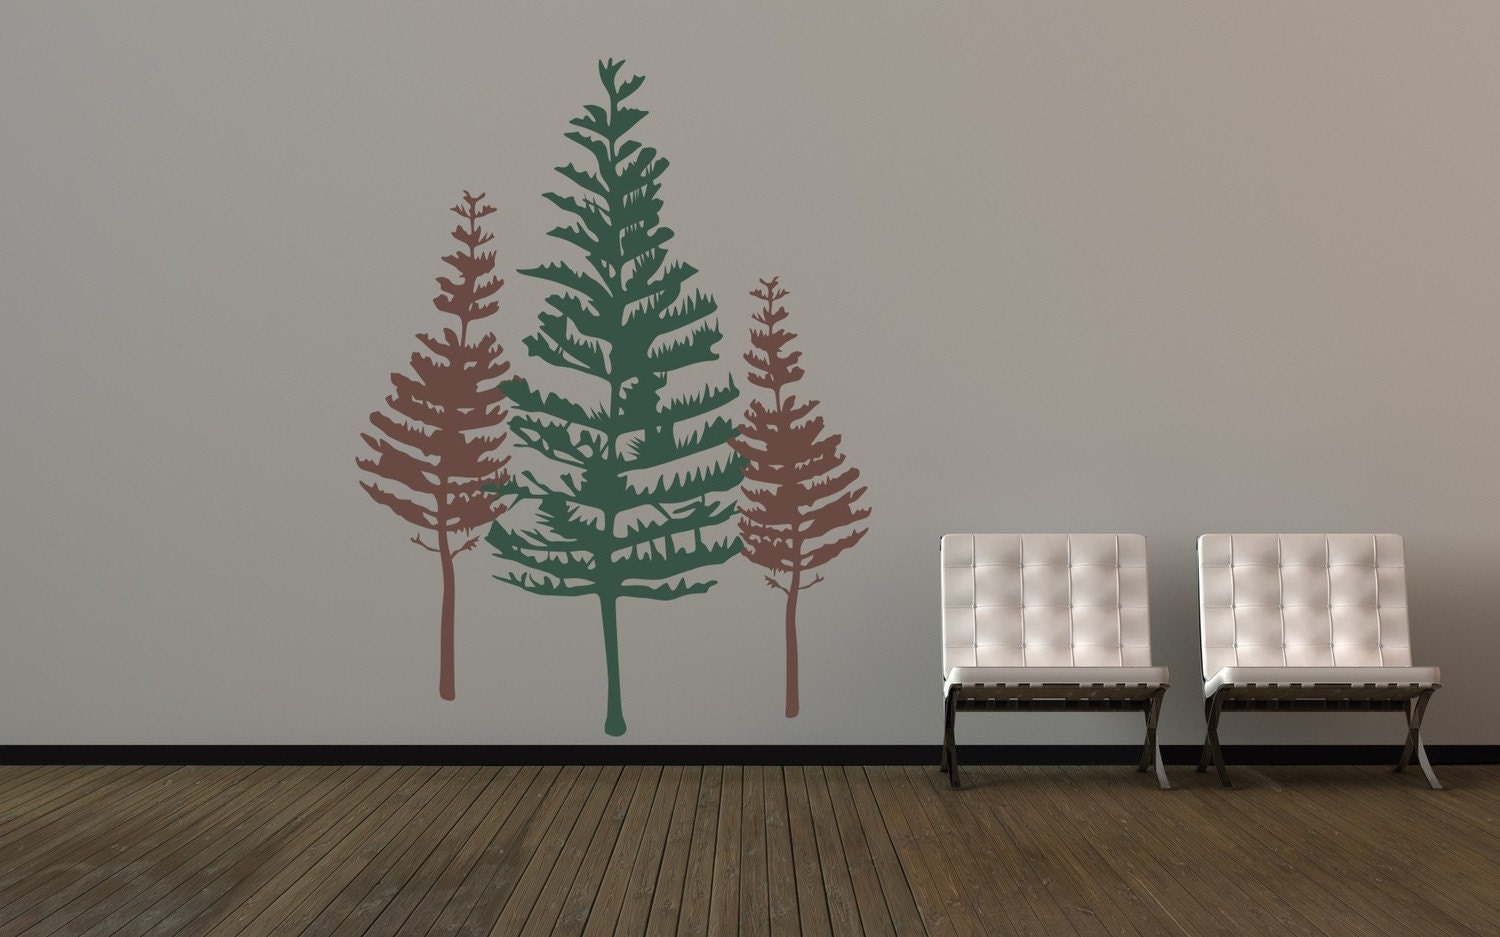 Tree Wall Decal, Rustic Wall Decor, Woodland Wall Decor, Pine Tree Wall Decal